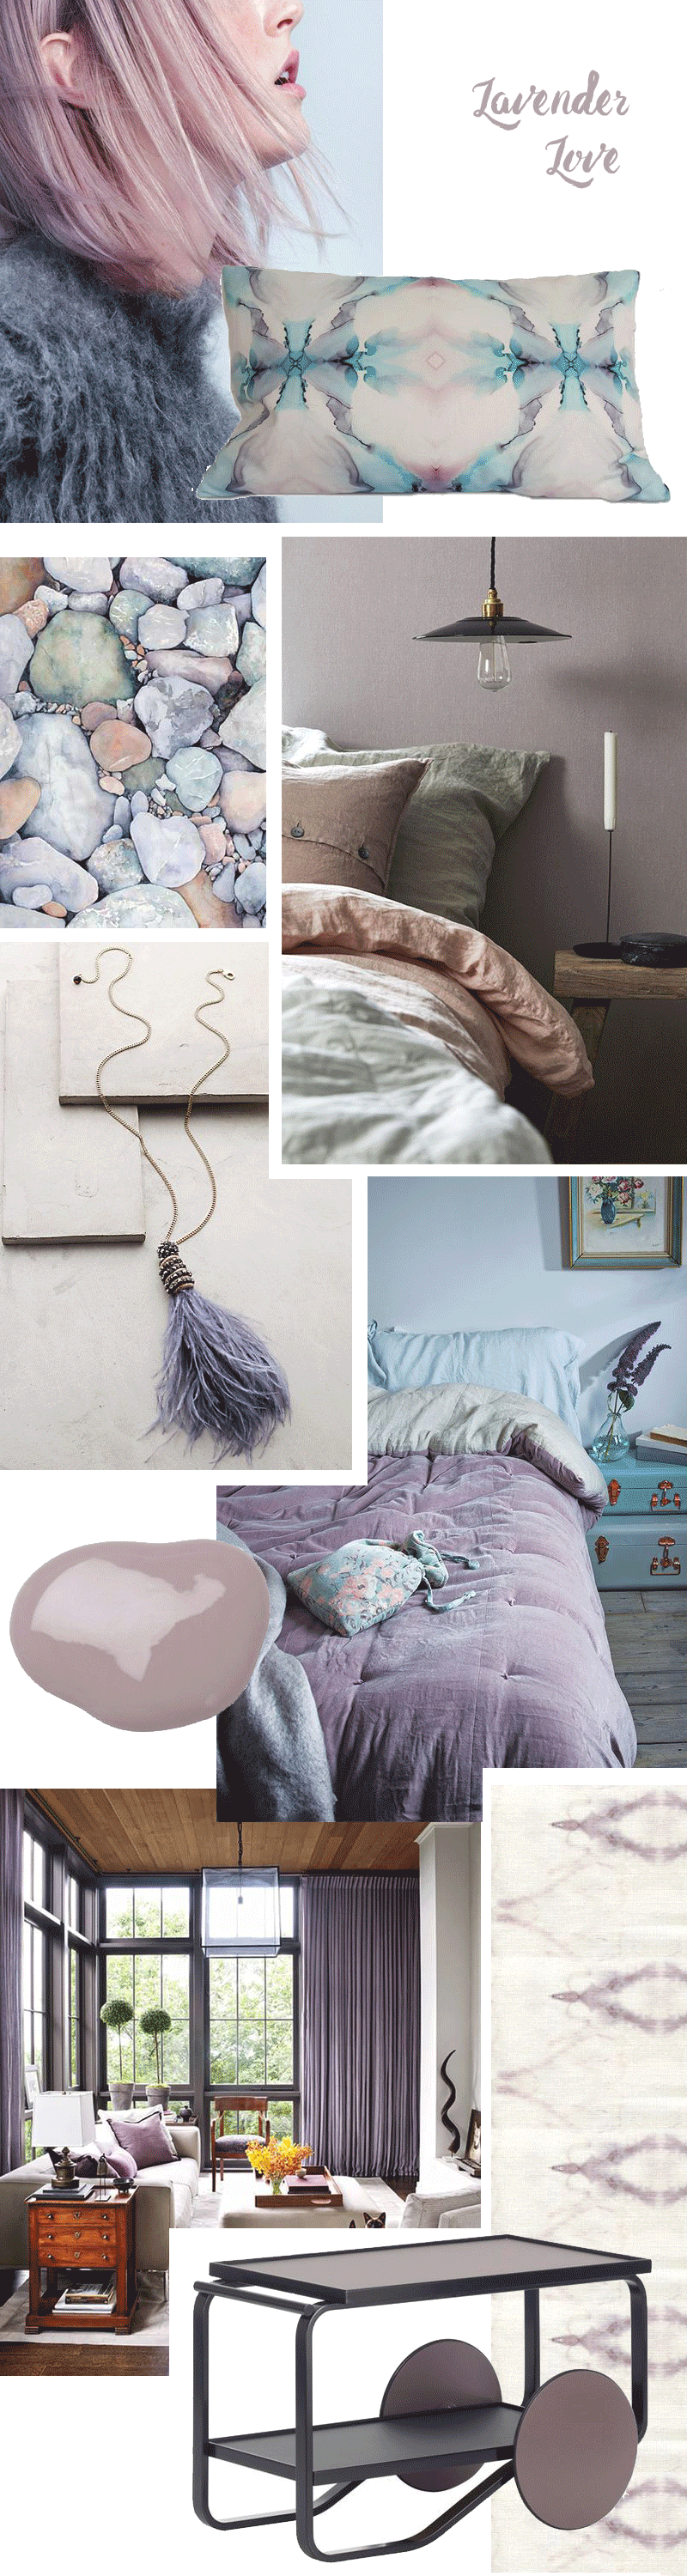 lavender-love-by-the-estate-of-things-home-decor-blog